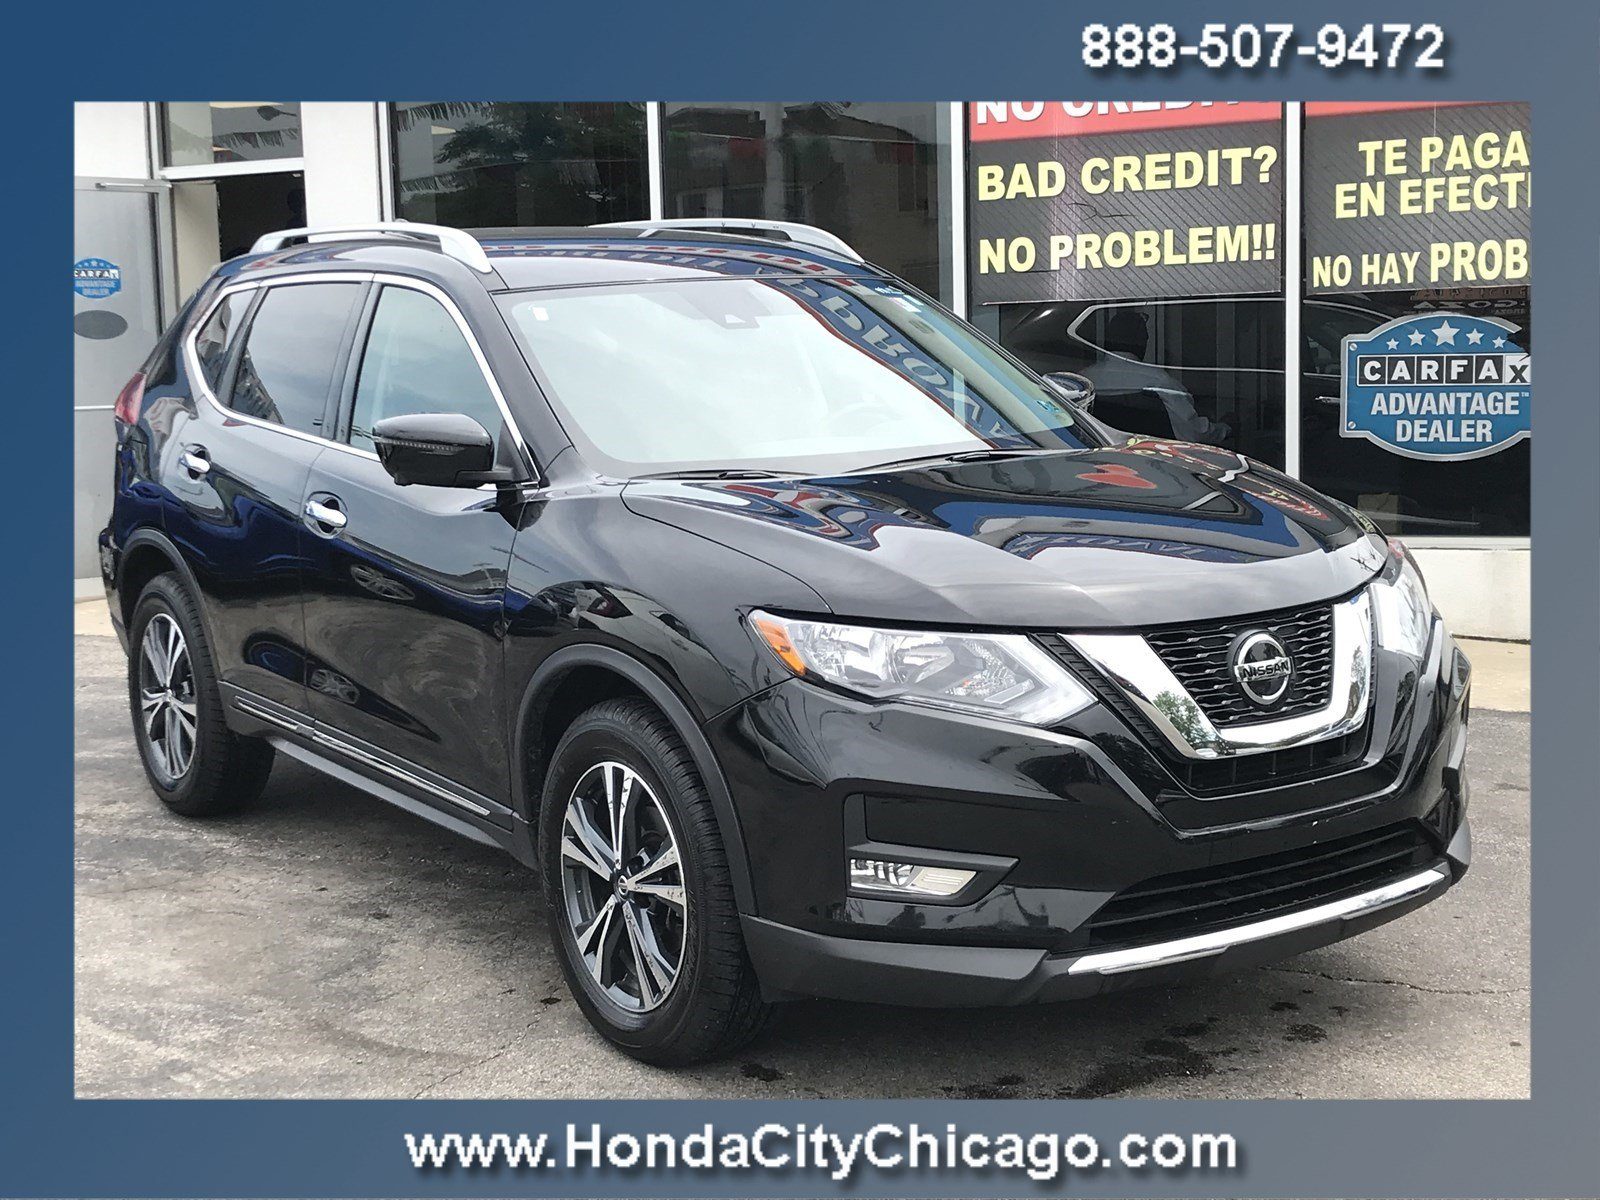 Used 2018 Nissan Rogue SL For Sale in Chicago, IL | Near Morton Grove,  Lisle & Highland, IL | VIN# 5N1AT2MVXJC785510